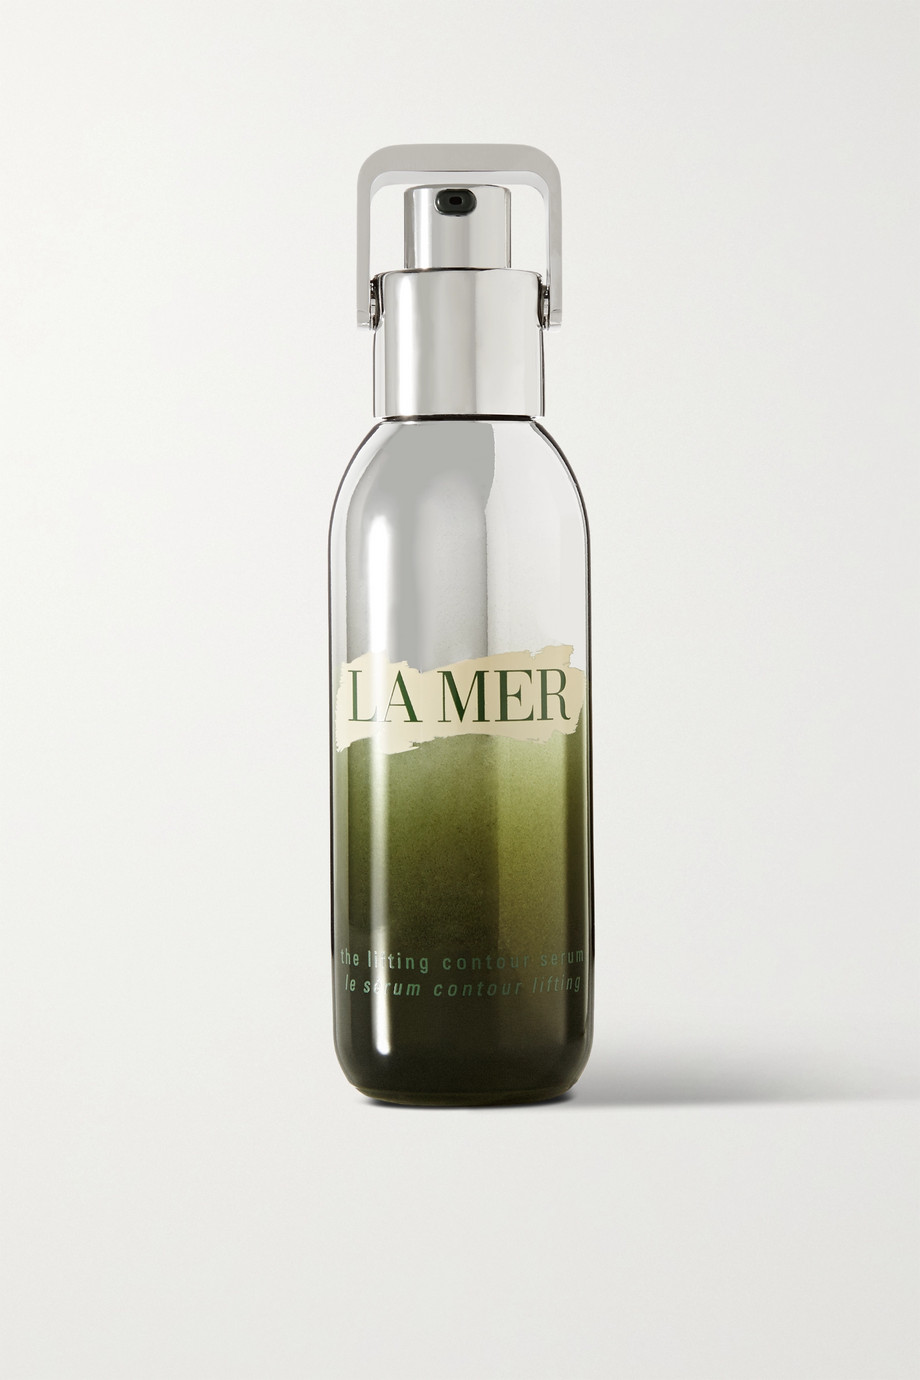 La Mer The Lifting Contour Serum, 30ml